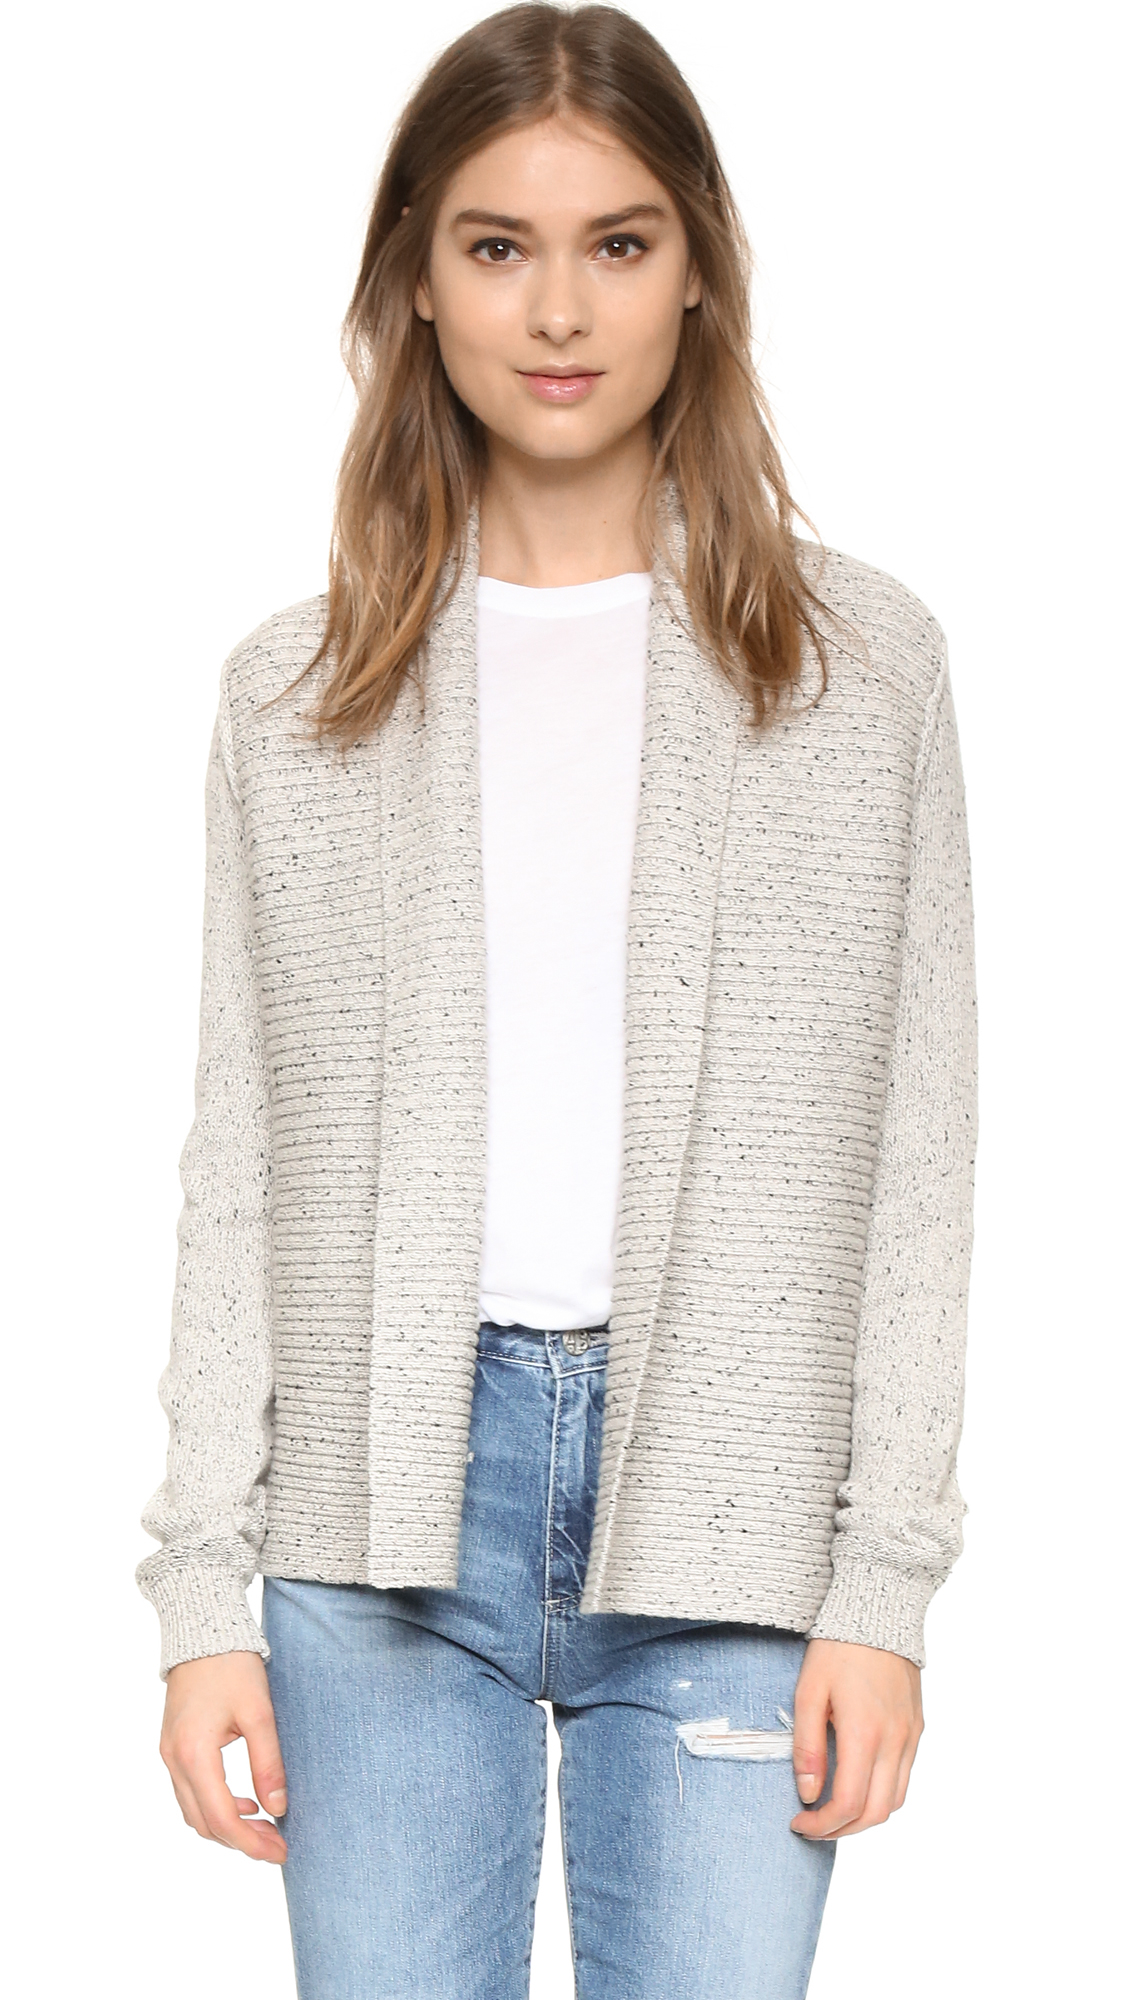 Soft joie Donda Cardigan in White | Lyst